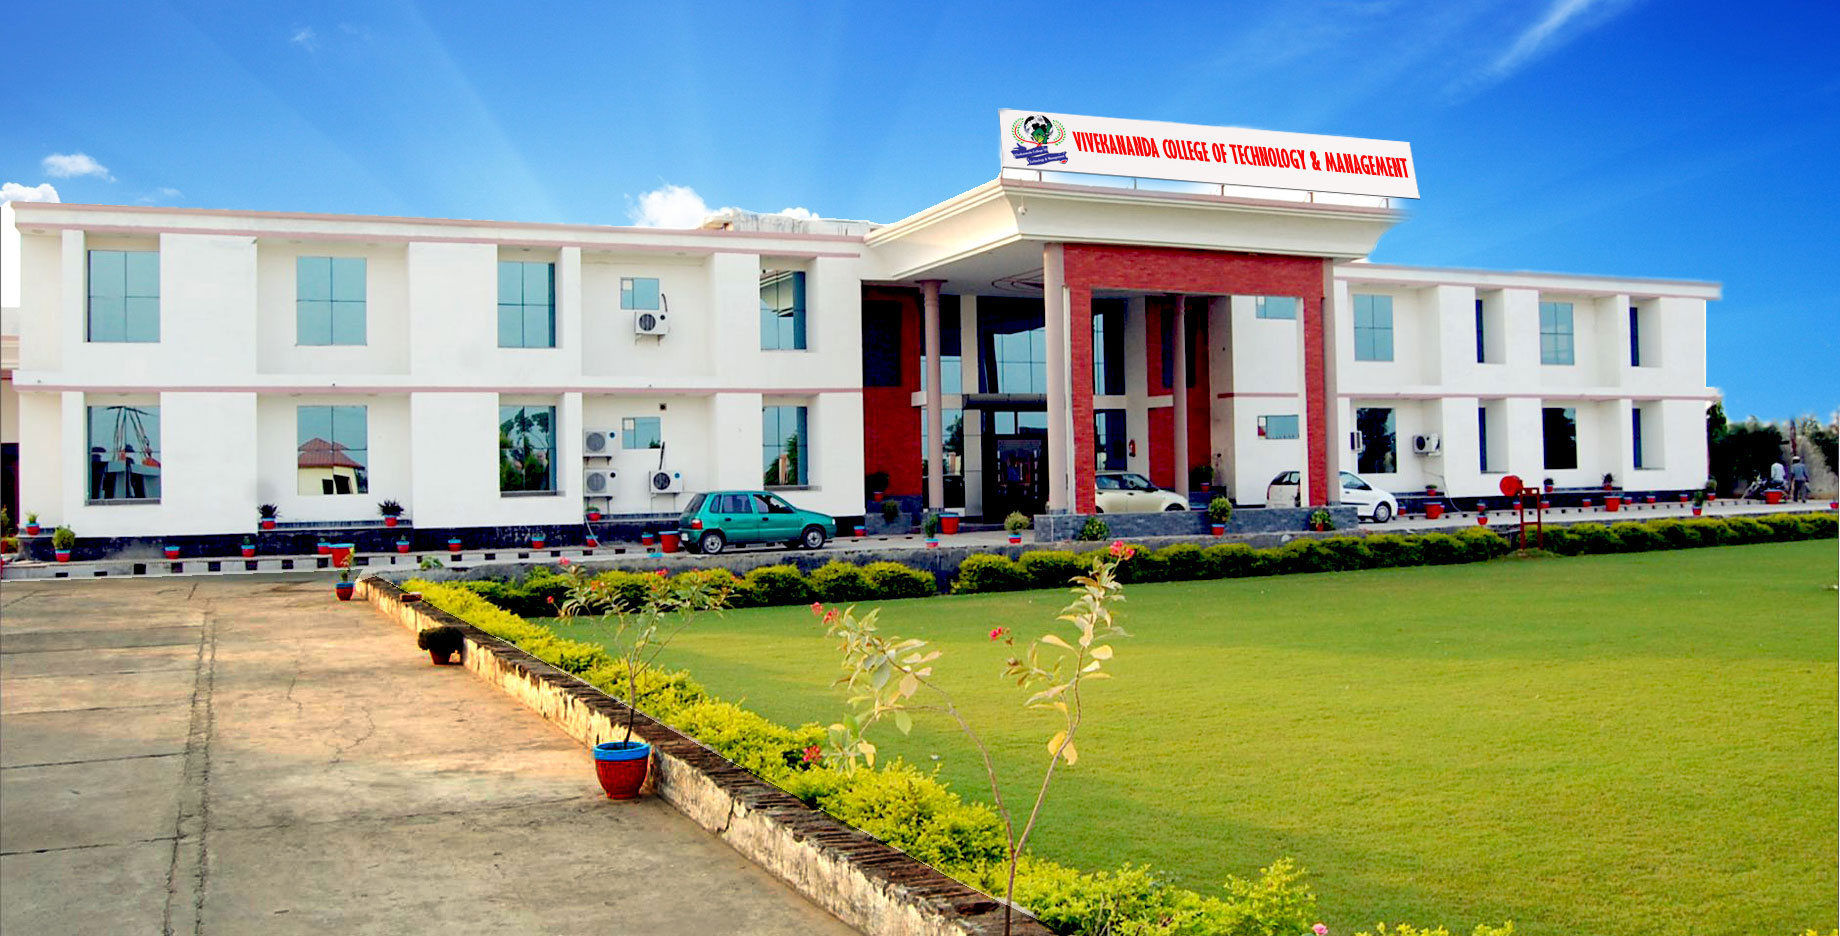 Vivekananda College of Technology and Management